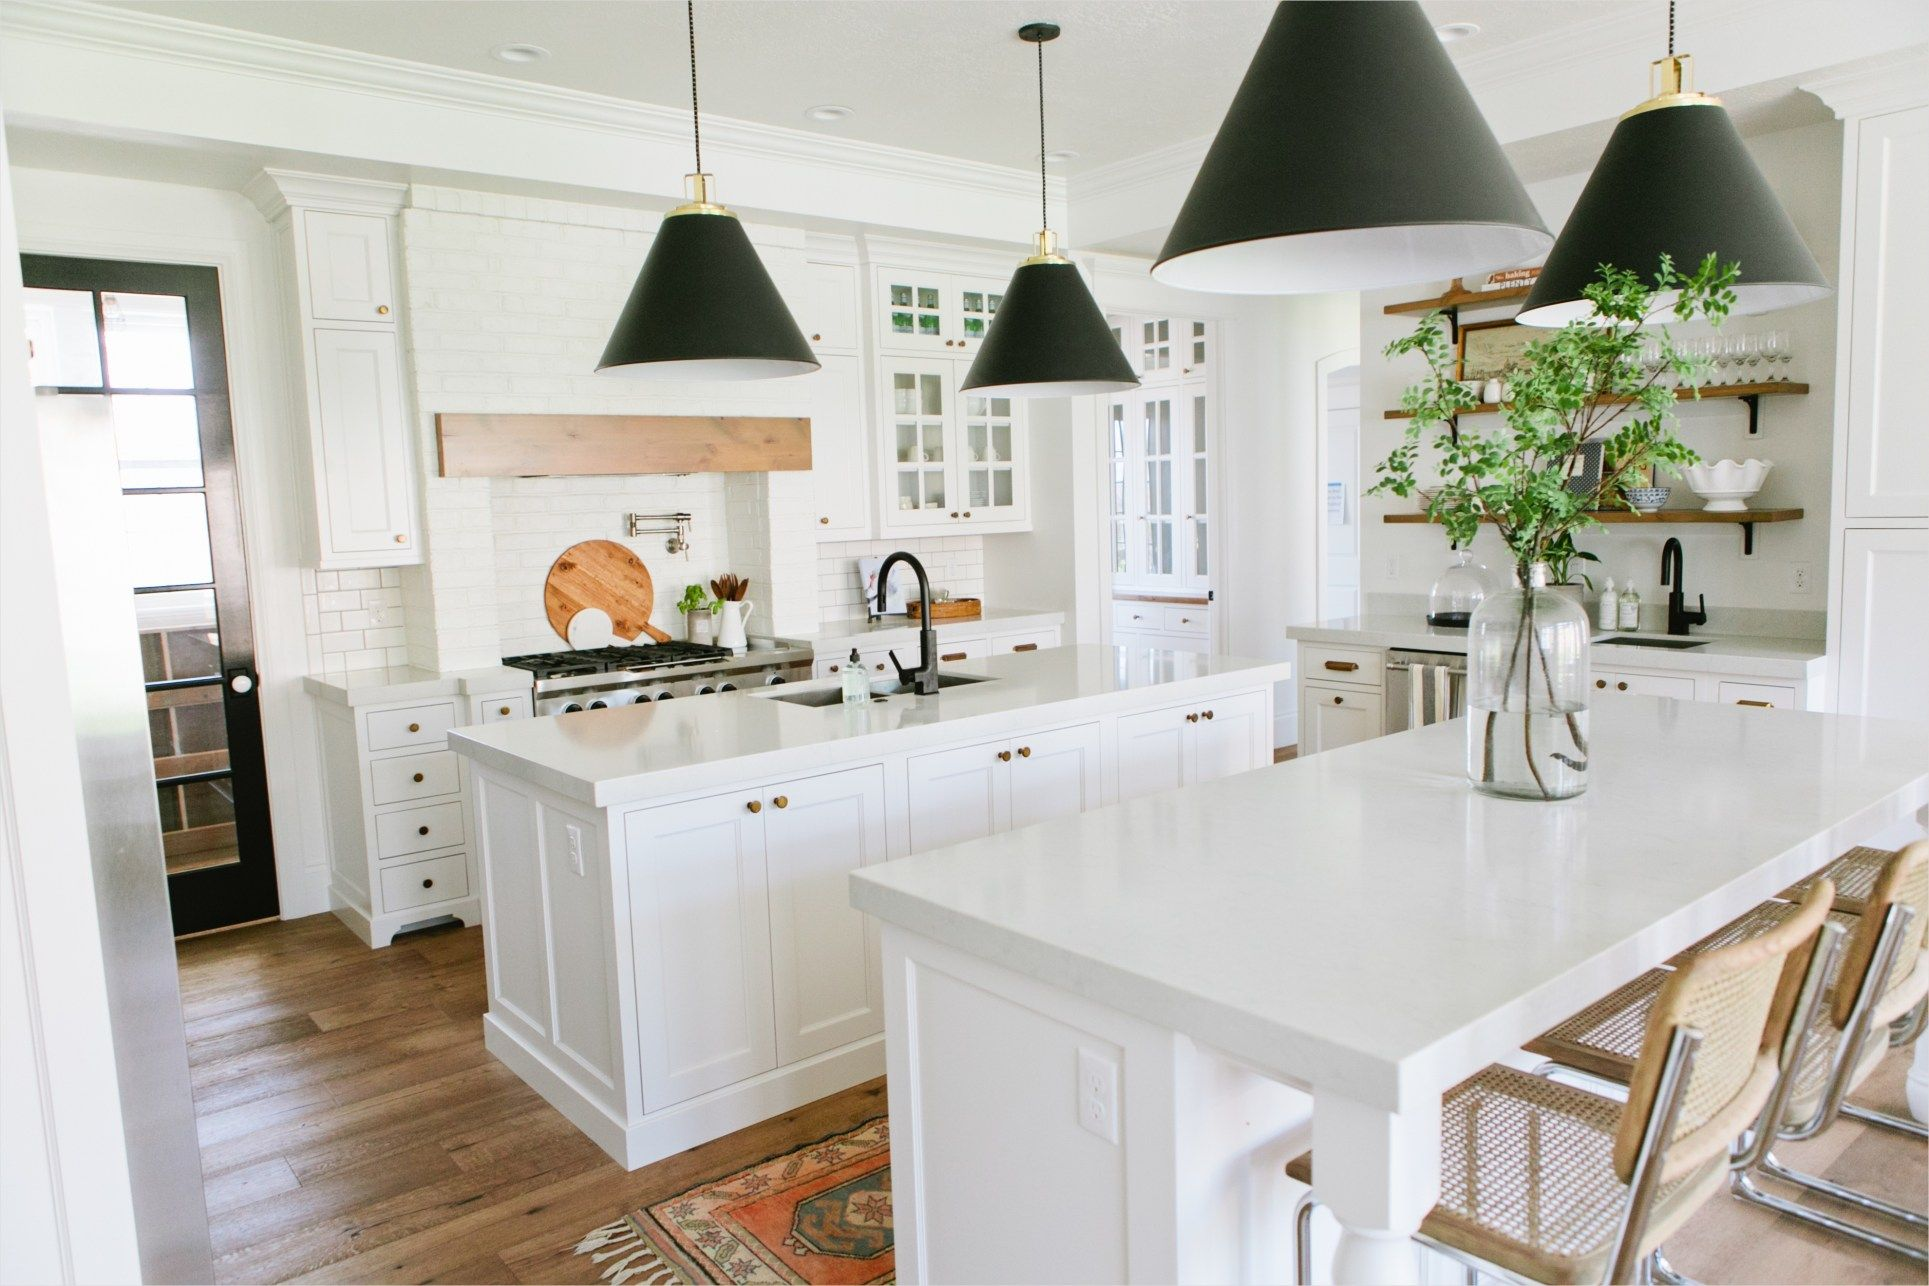 44 Stunning Modern Farmhouse Kitchen Ideas 68 The Modern Farmhouse